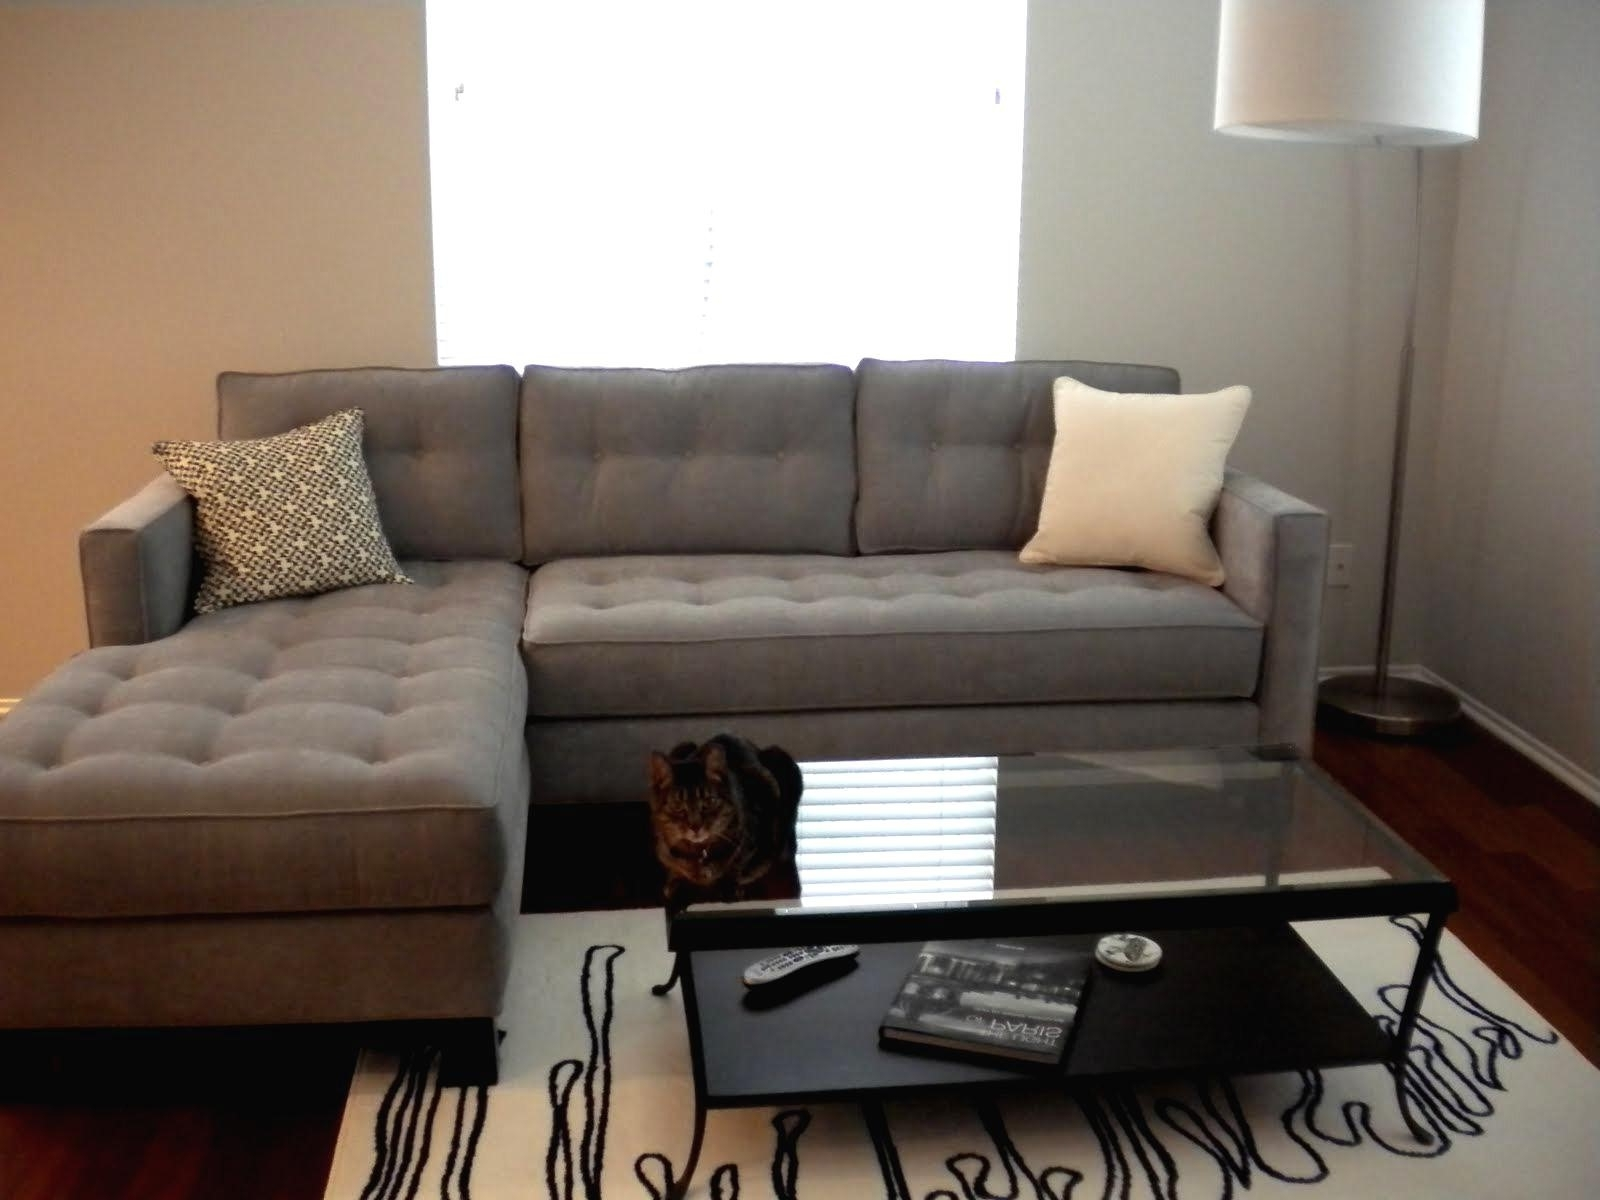 Recent Tufted Sectional Sofas With Chaise For Sofa: Tufted Sectional Sofa With Chaise (View 3 of 15)